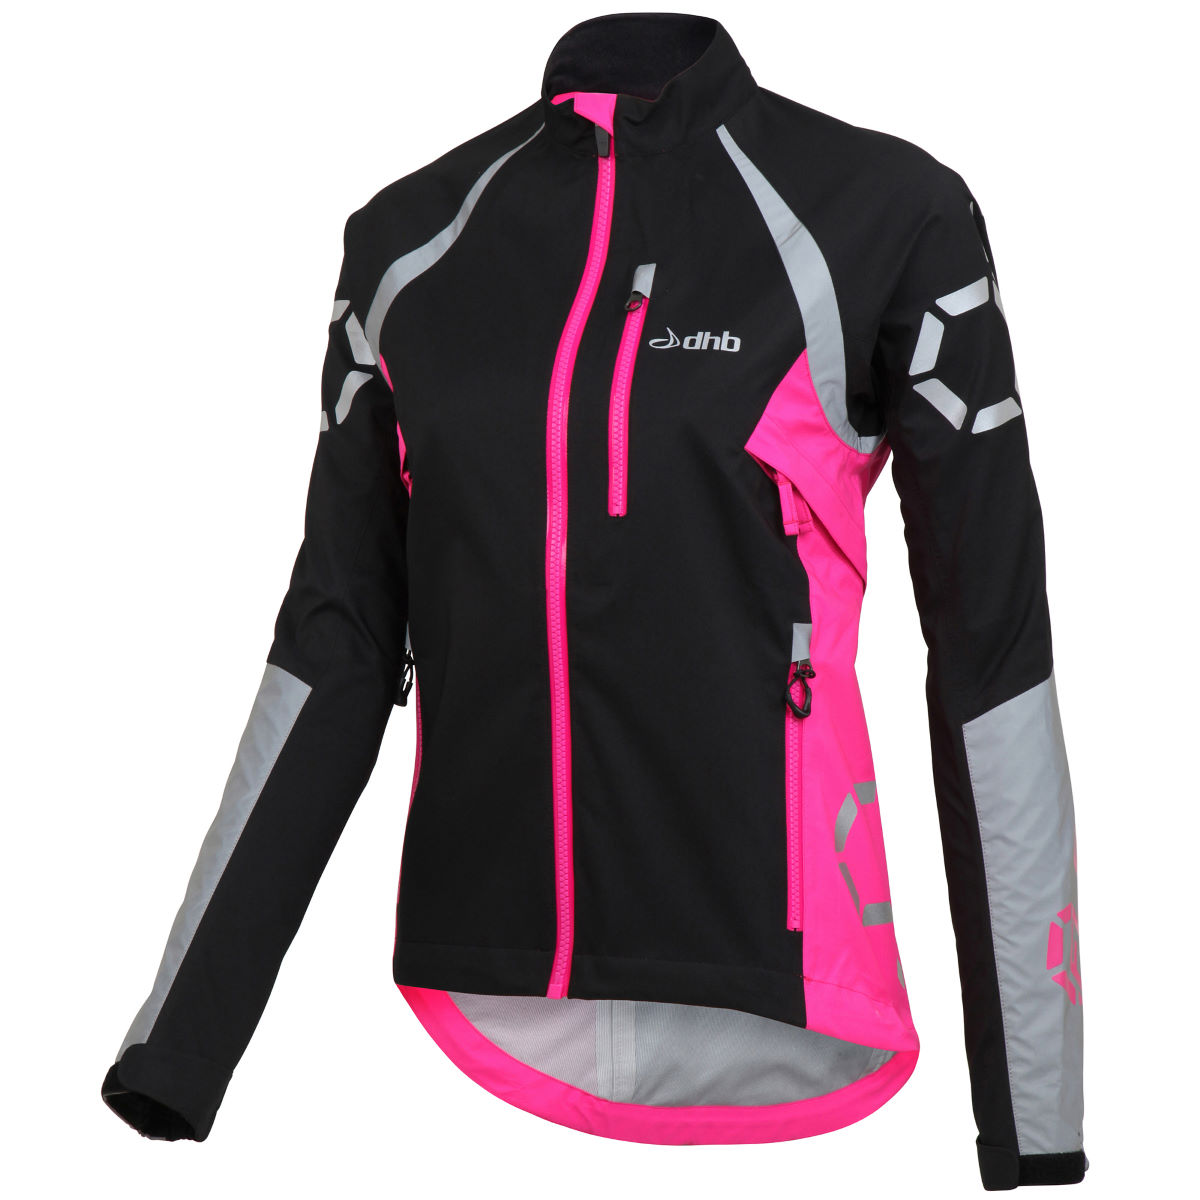 dhb Flashlight Womens Force Waterproof Jacket   Cycling Waterproof Jackets